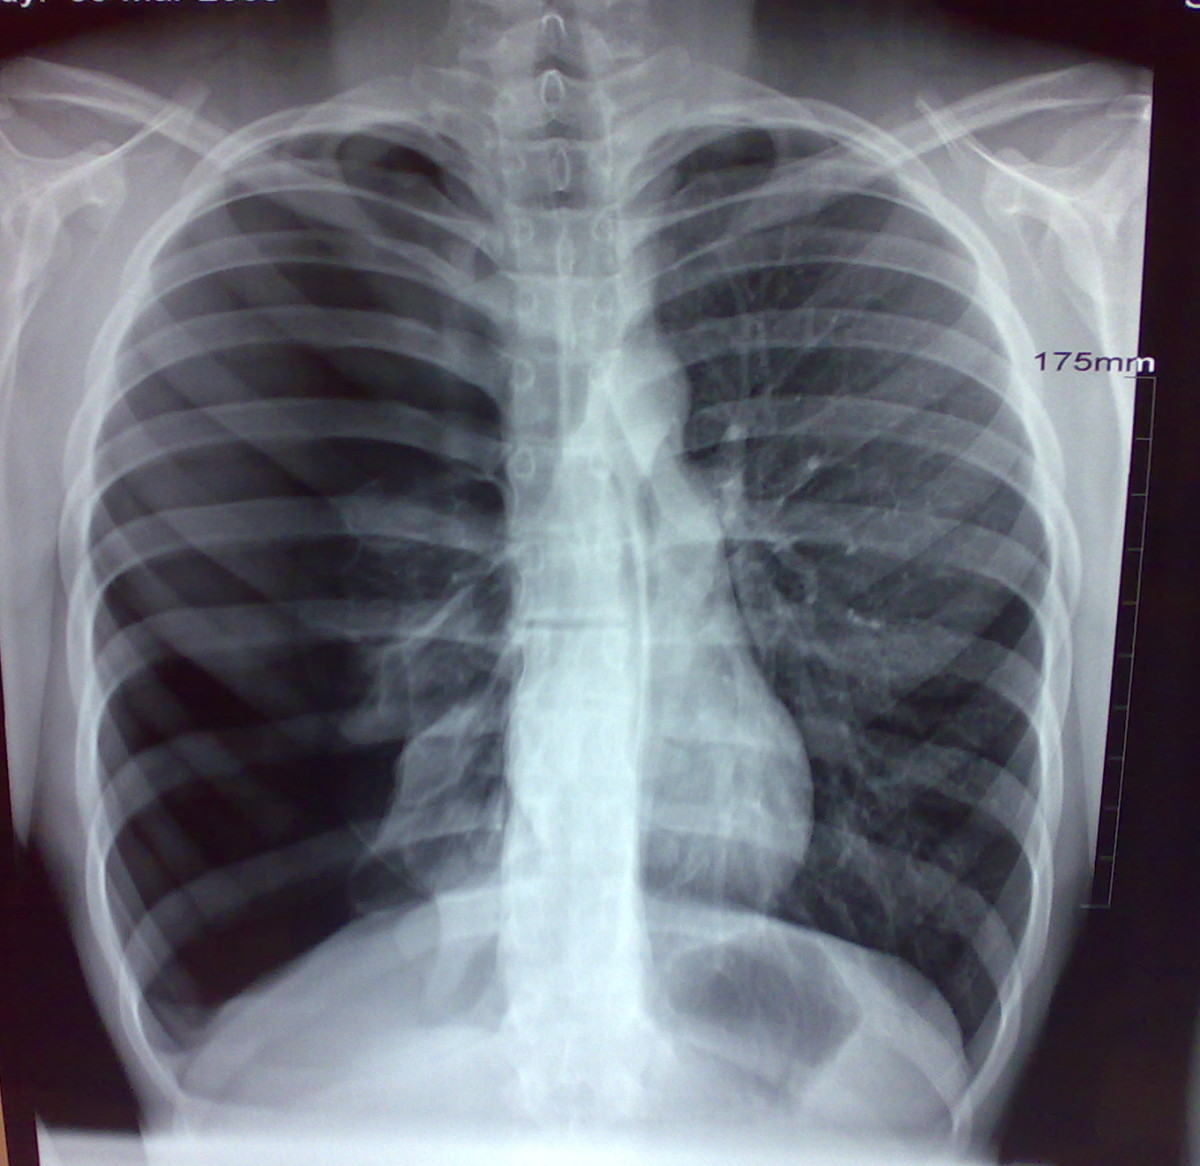 Pneumothoraces can be caused by physical trauma to the chest (including blast injury), or as a complication of medical or surgical intervention